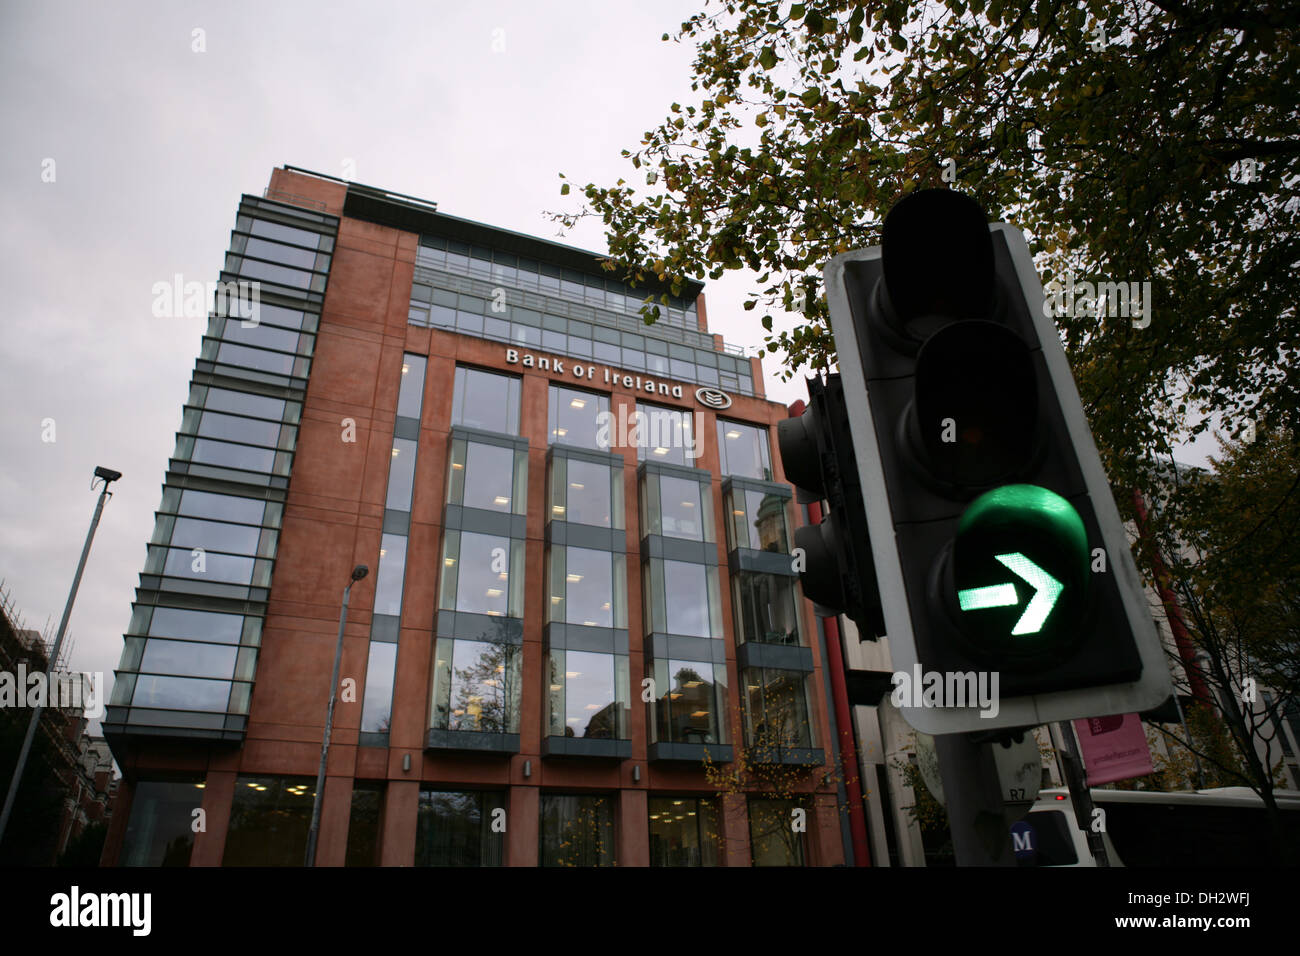 Belfast, UK 31st October 2013 Front of the Bank of Ireland HQ in Northern Ireland With Traffic Green light - Stock Image